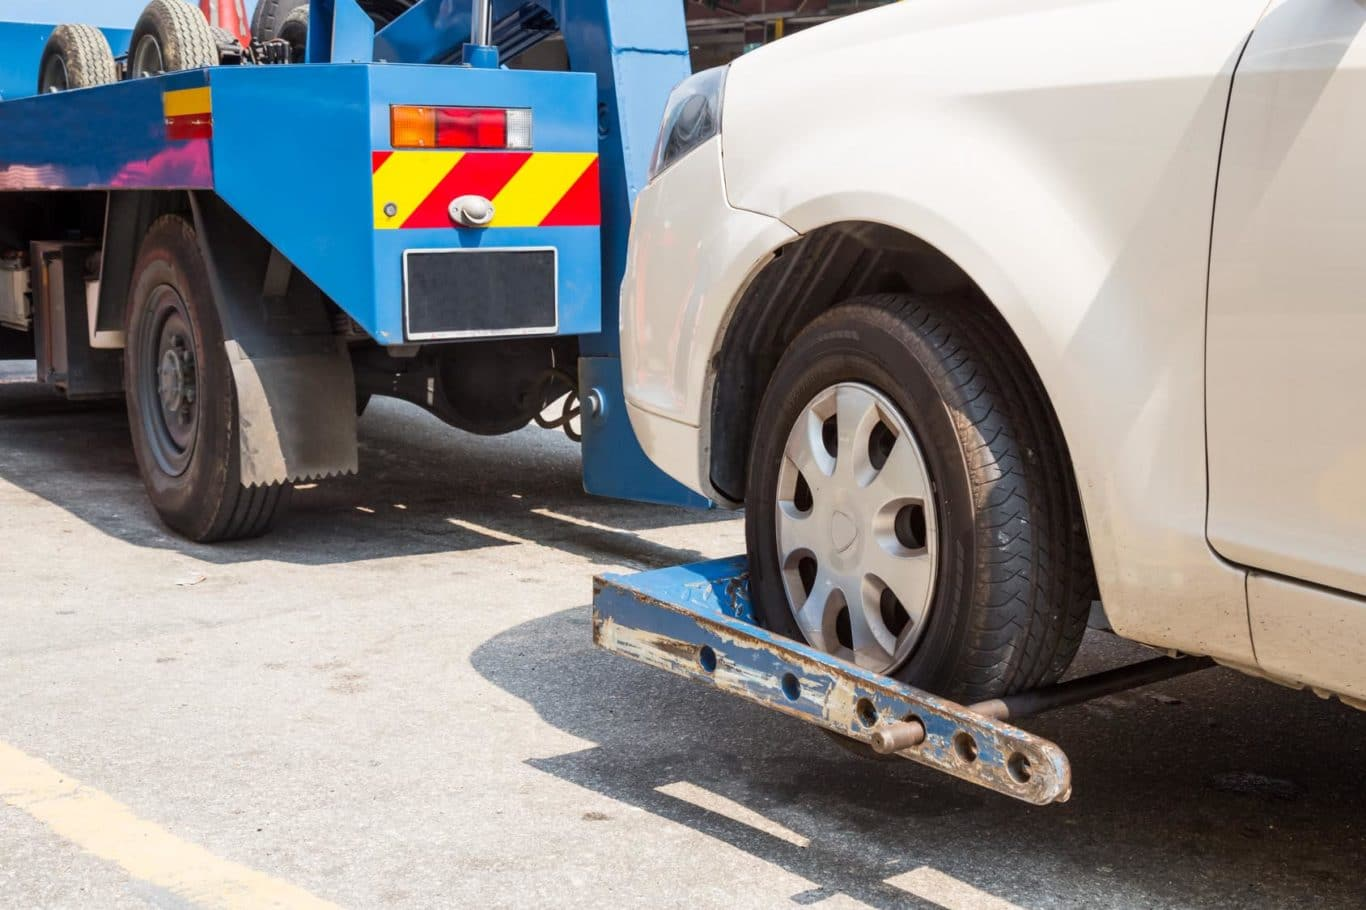 Greenore expert Car Recovery services